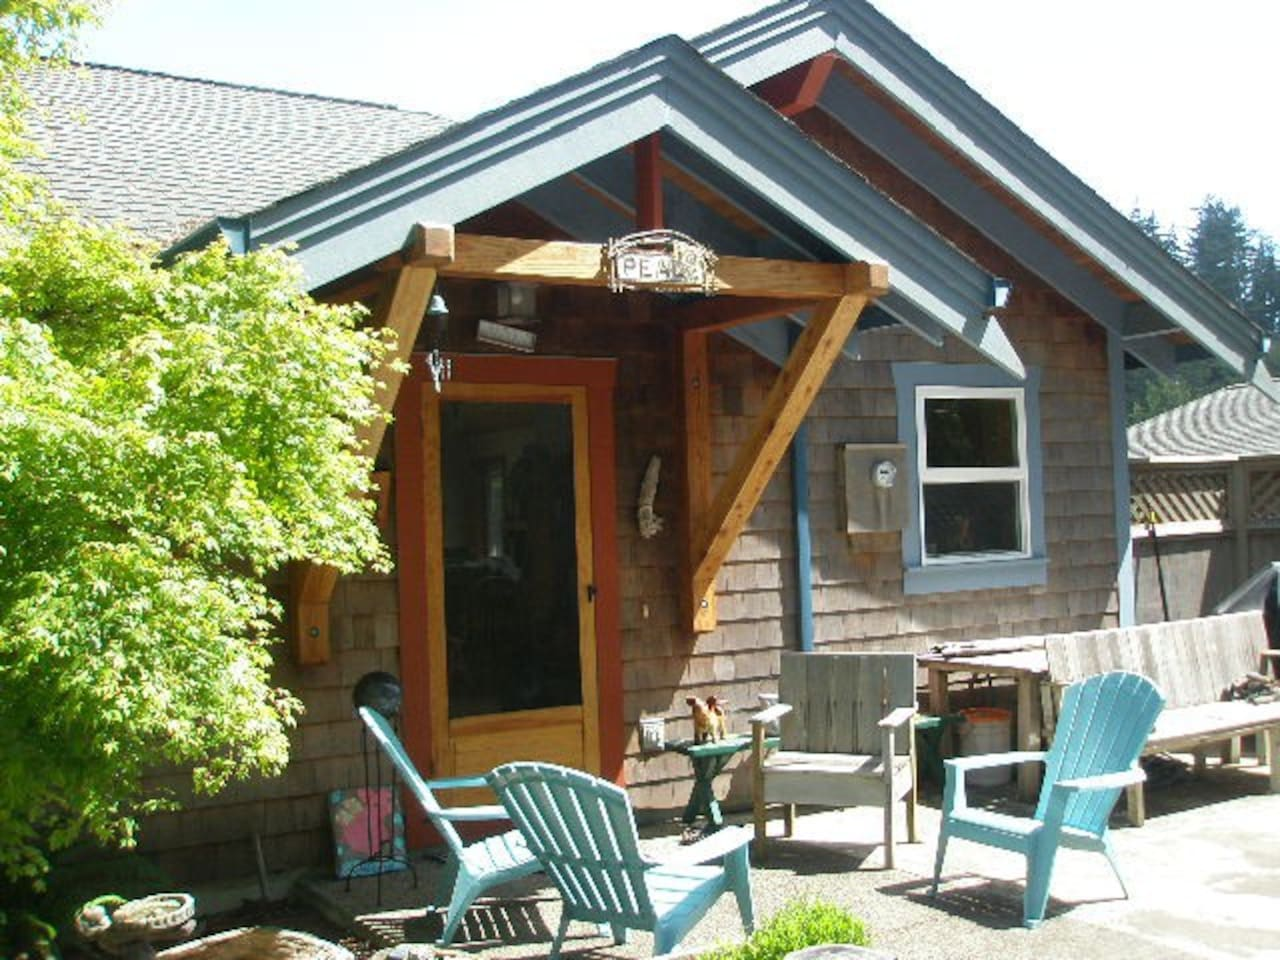 The front entrance to the house. Sunny patio with seating, Gas BBQ